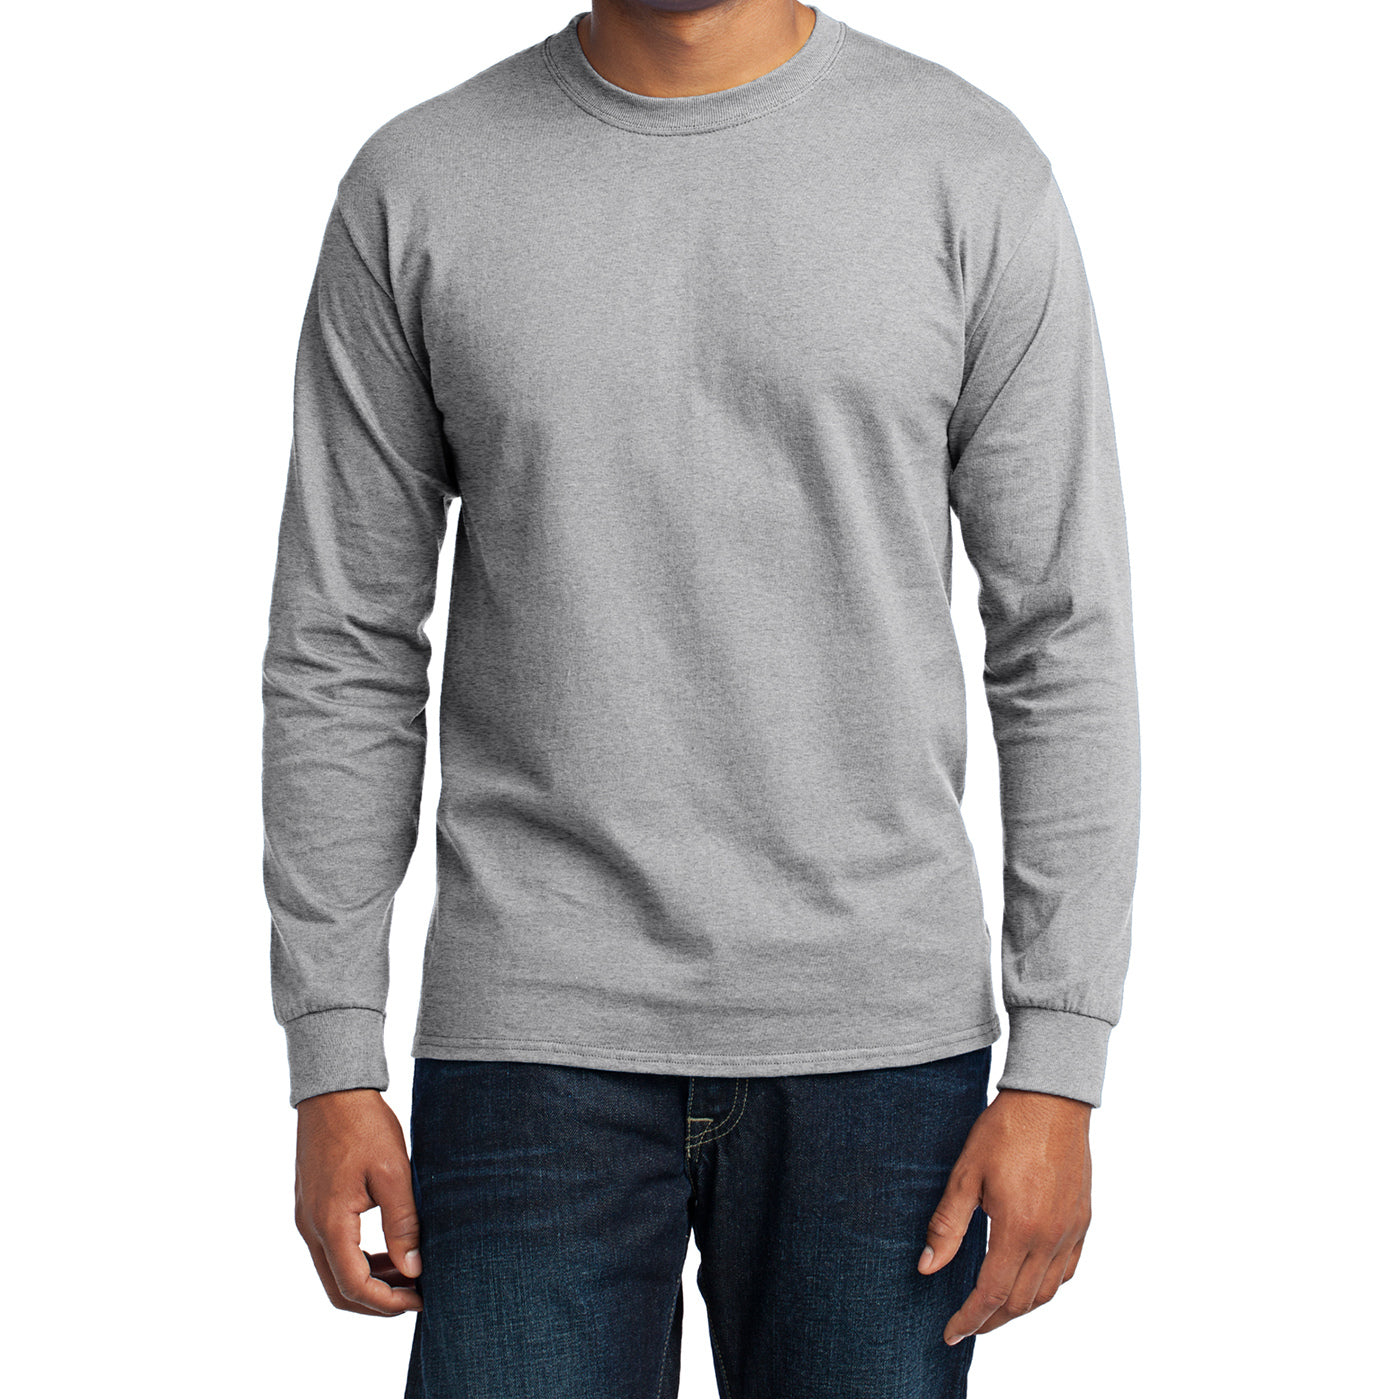 Men's Long Sleeve Core Blend Tee - Ash – Front